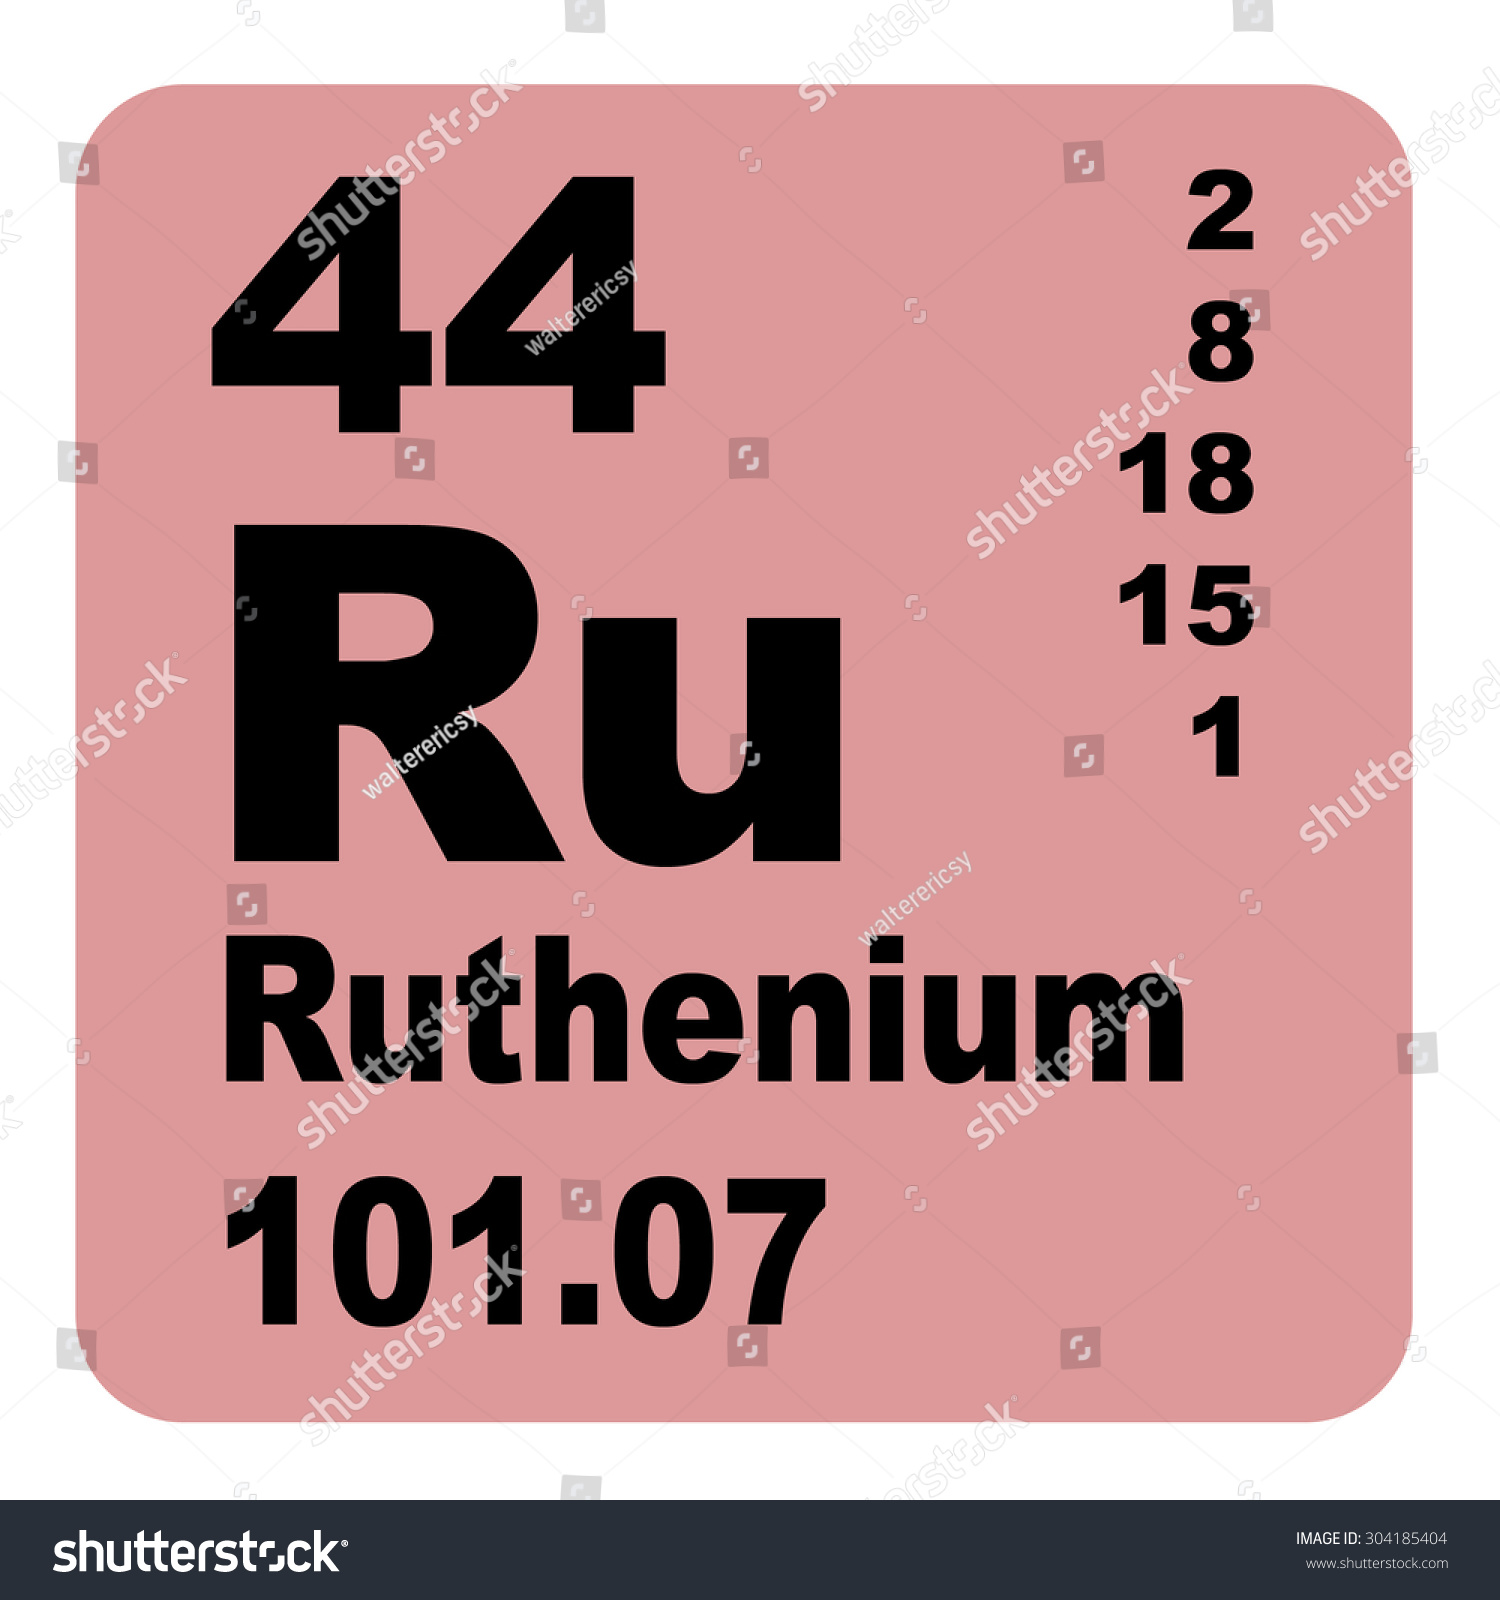 Ruthenium periodic table elements stock illustration 304185404 ruthenium periodic table of elements gamestrikefo Choice Image